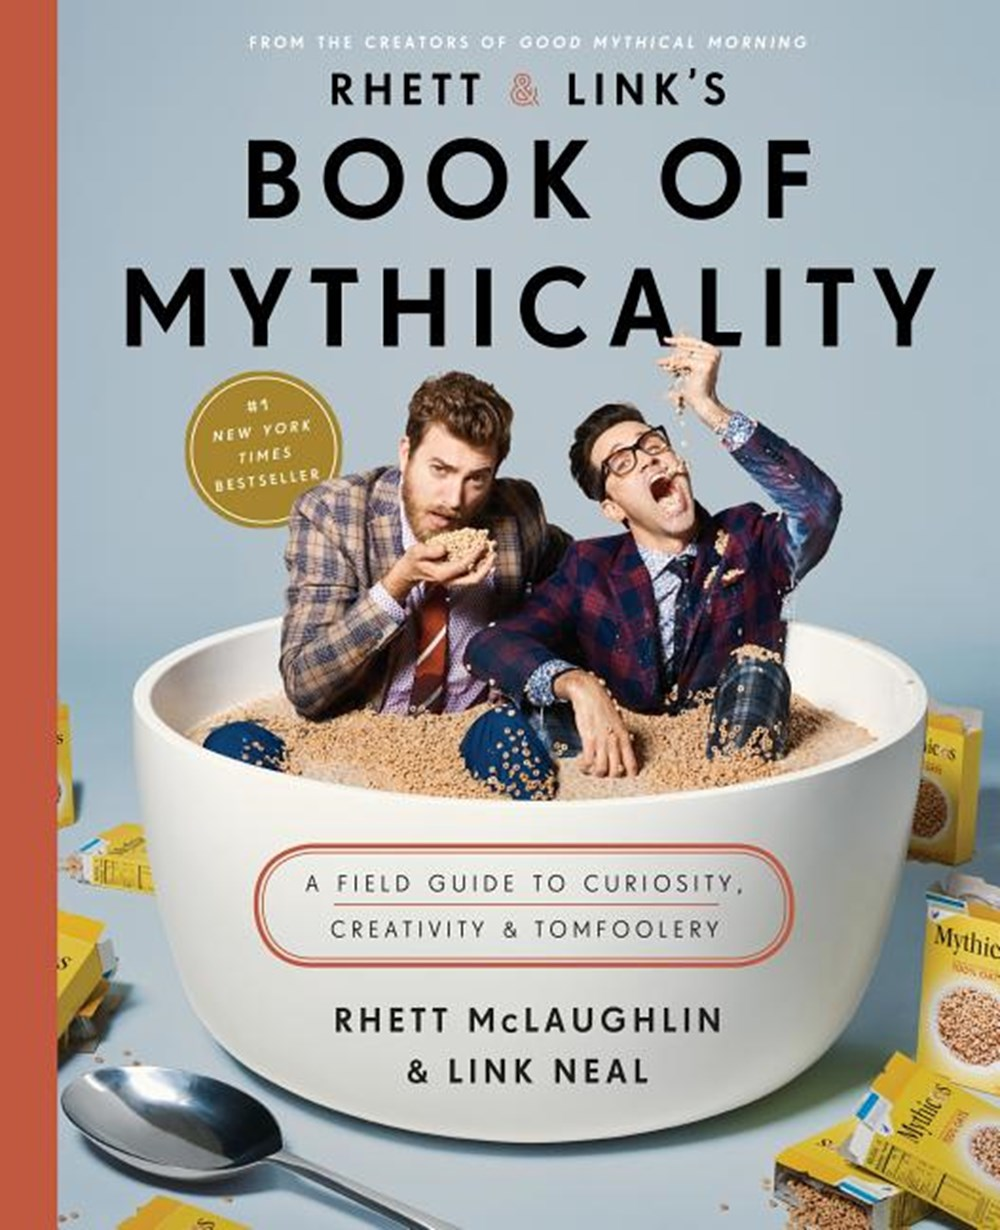 Rhett & Link's Book of Mythicality A Field Guide to Curiosity, Creativity, and Tomfoolery